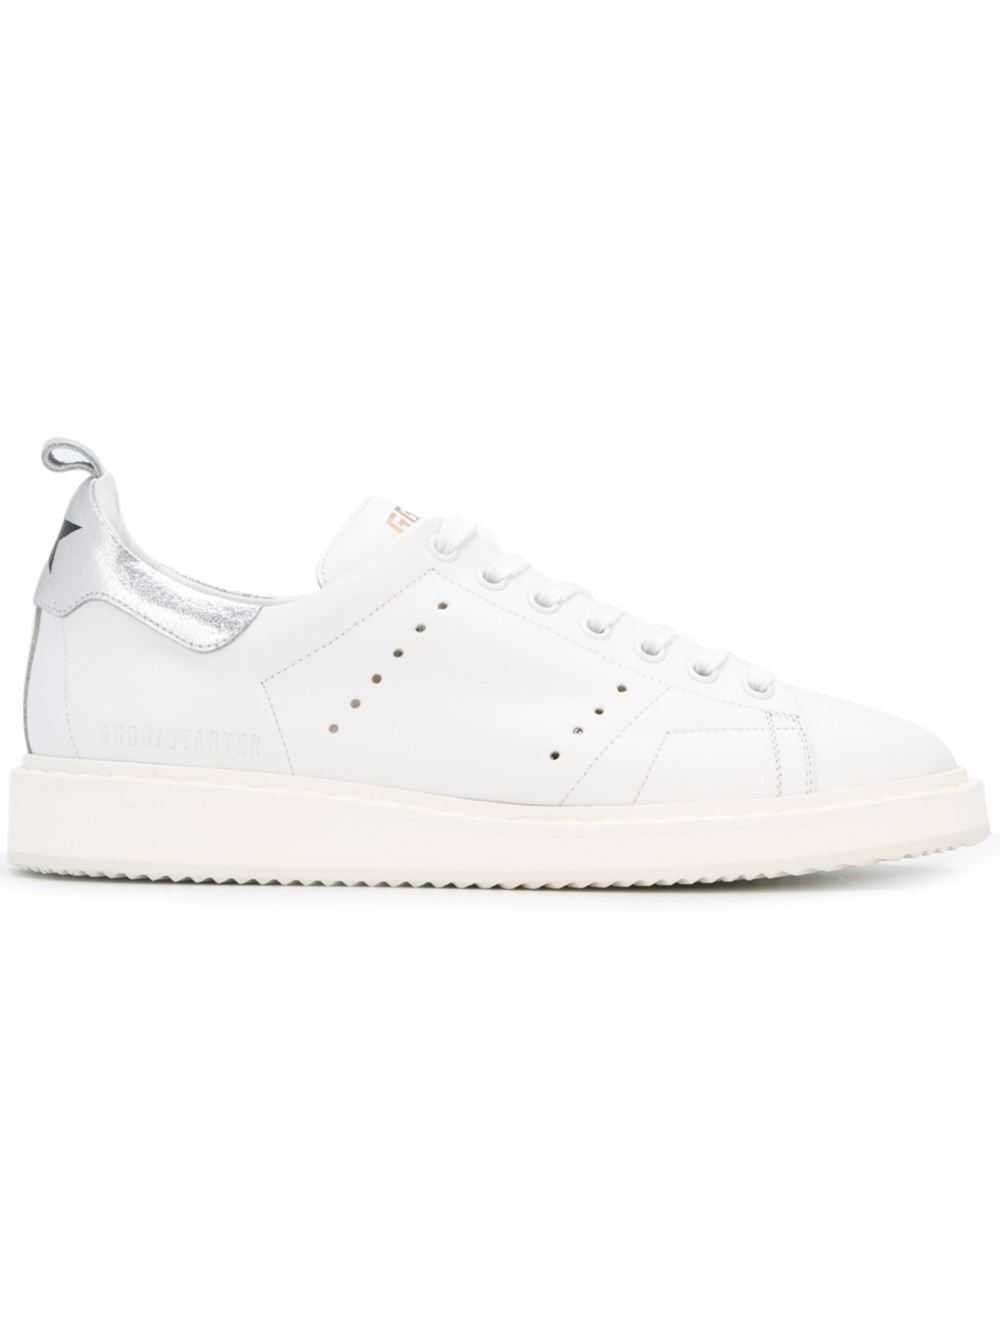 Golden Goose Starter Sneakers In White Leather With G12 Silver